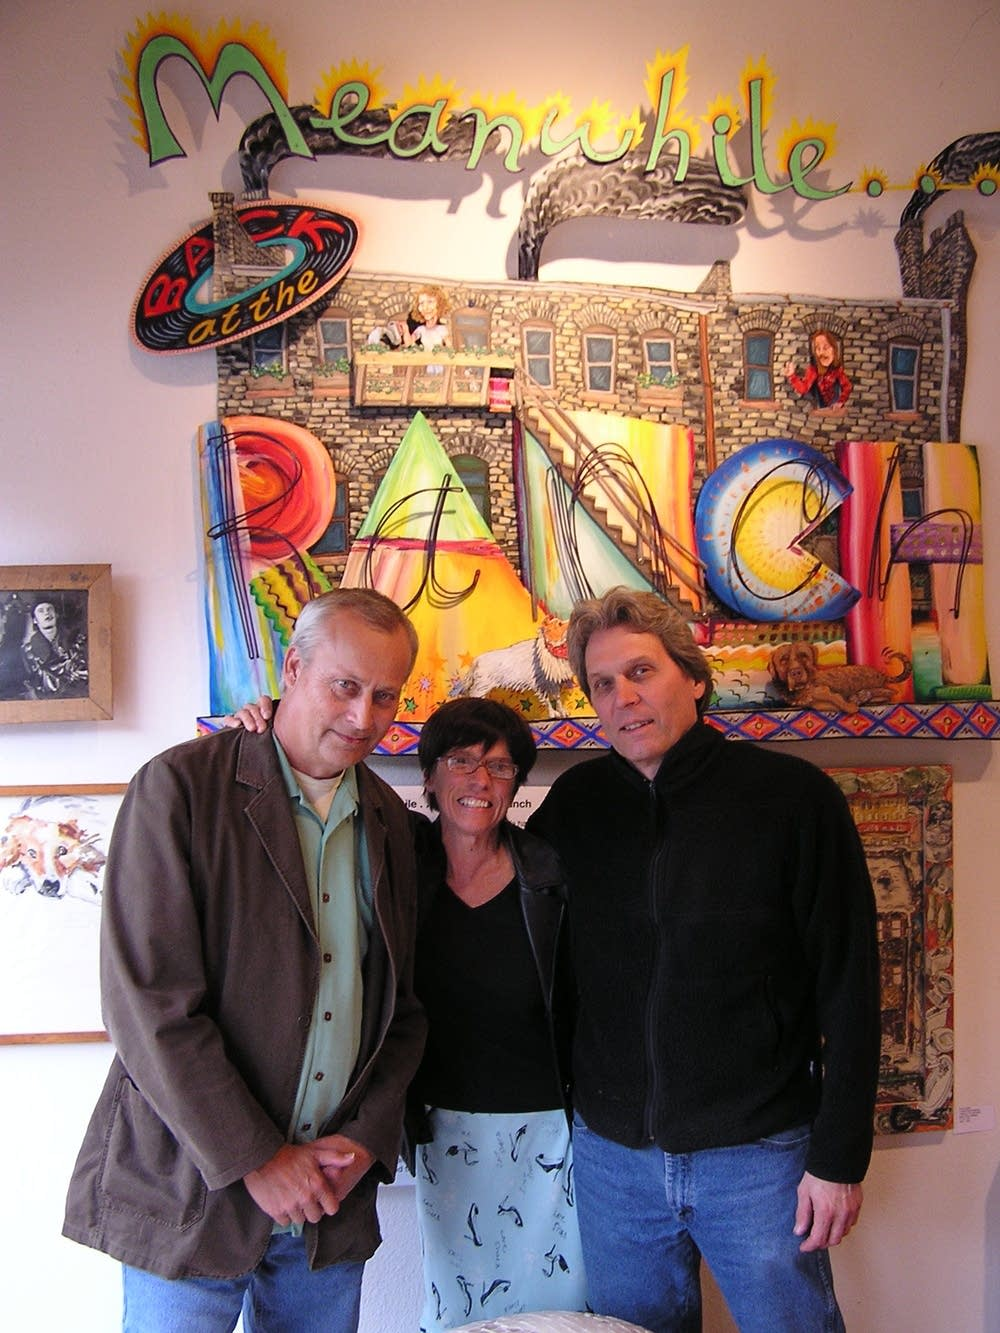 Ranch Collective artists